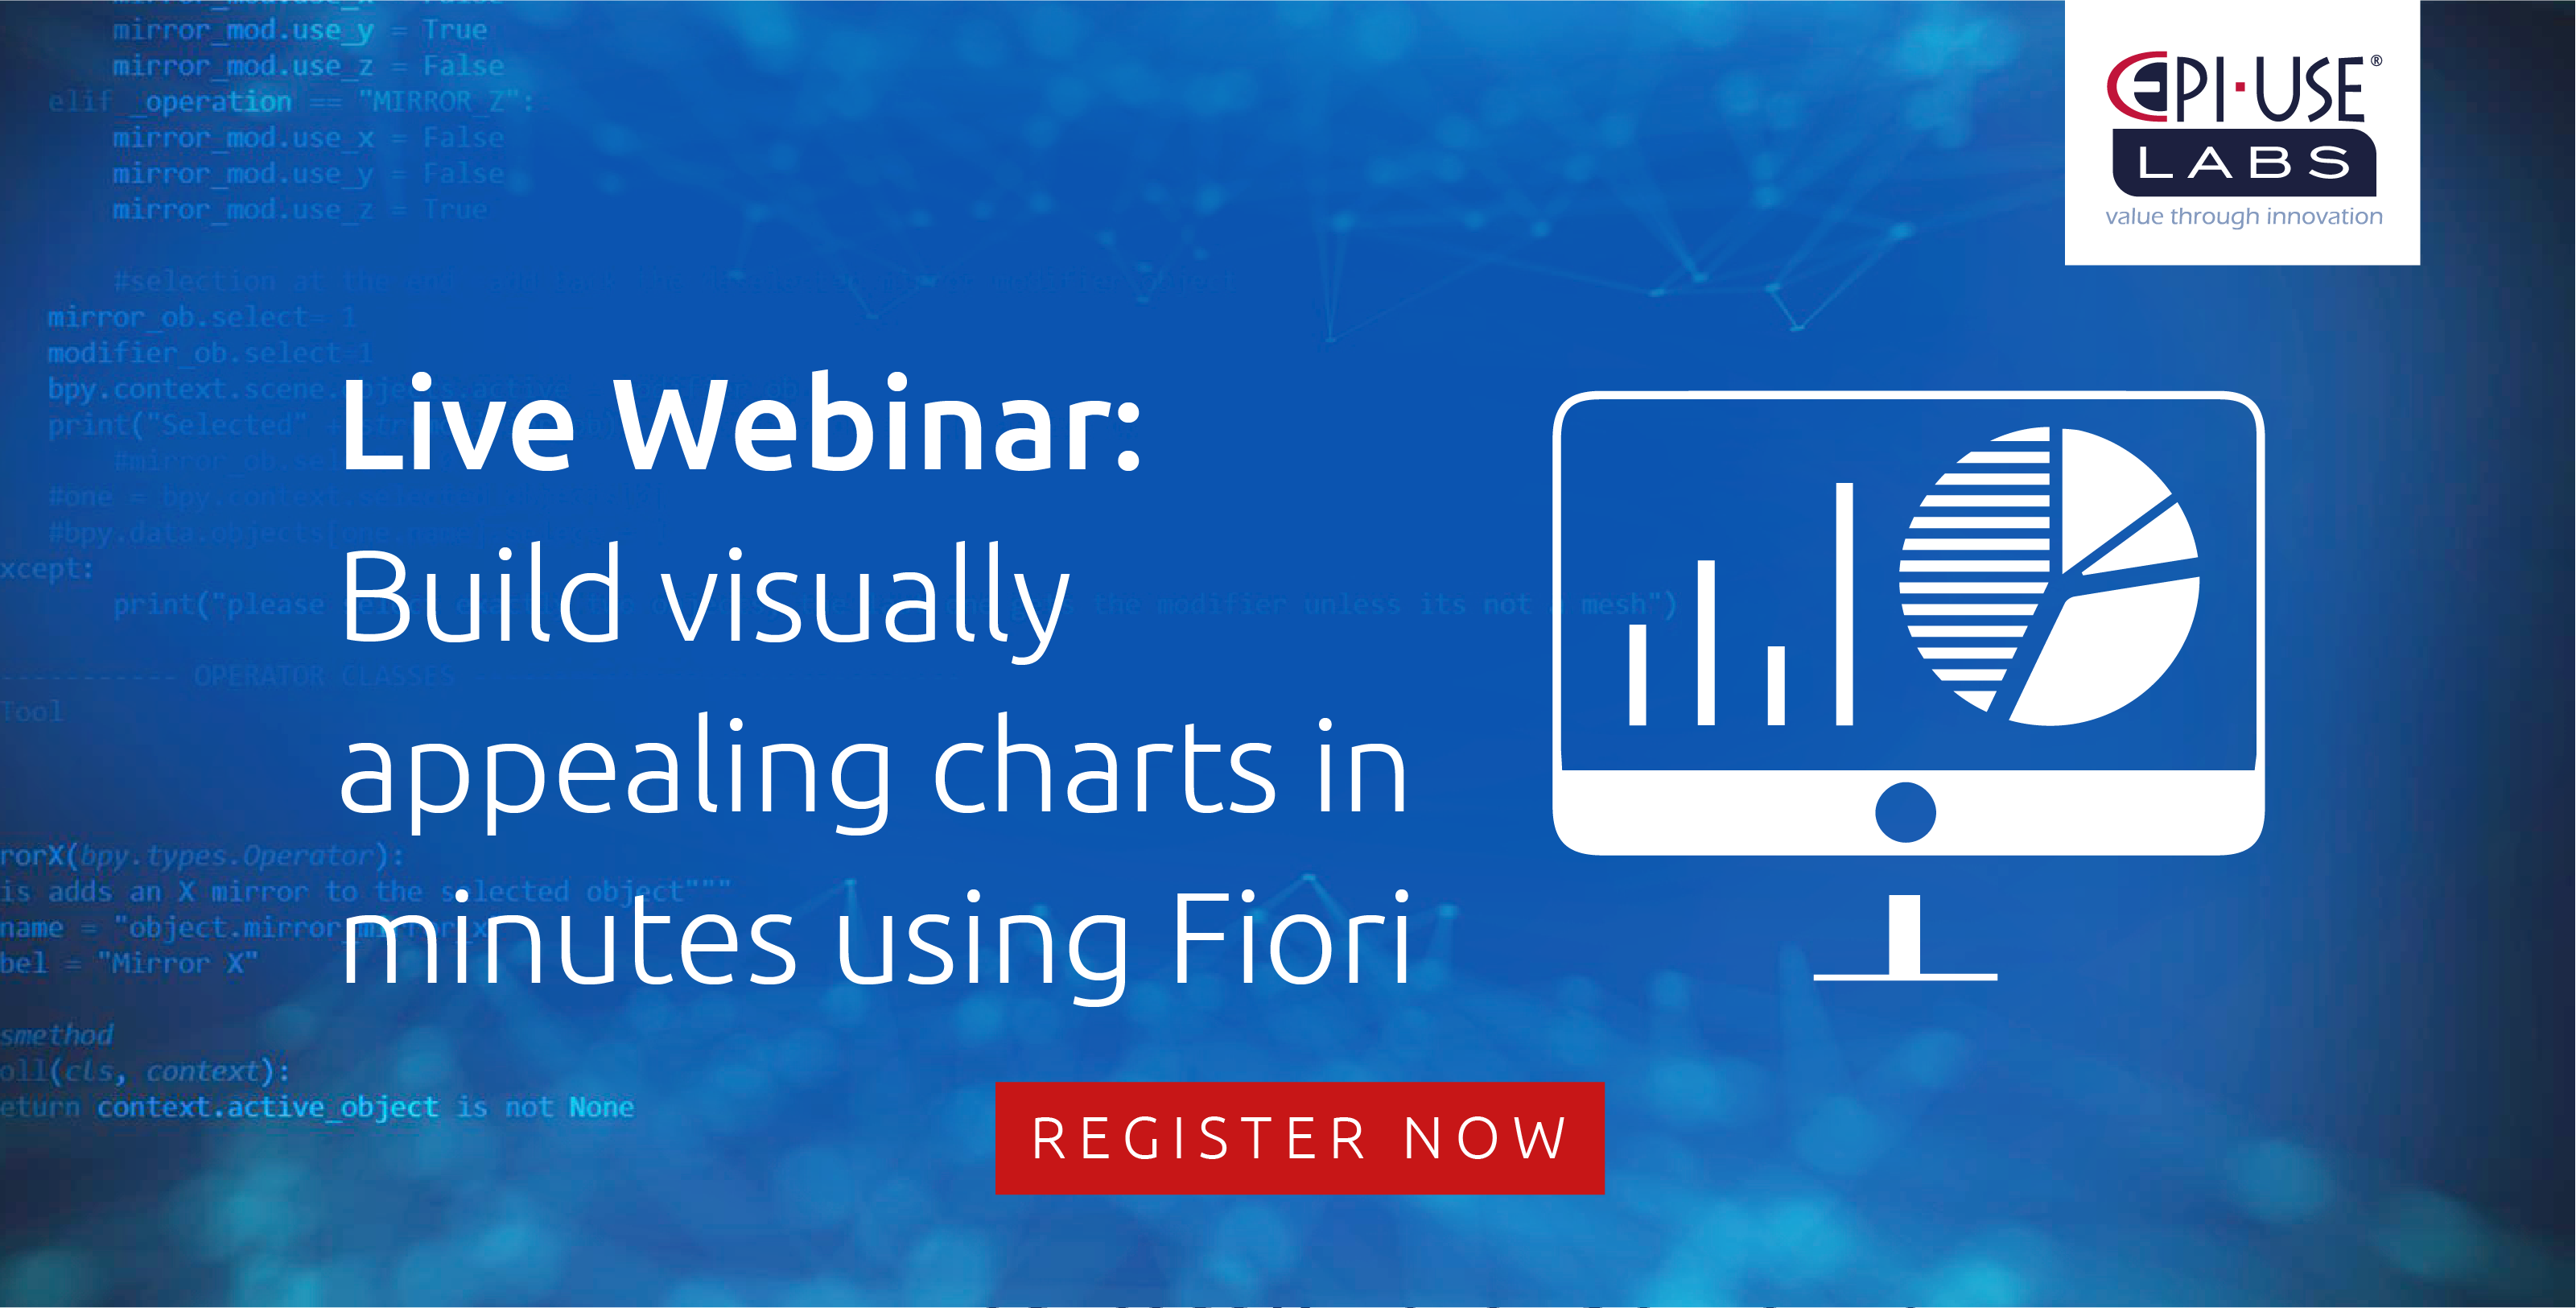 Build visually appealing charts in minutes using Fiori